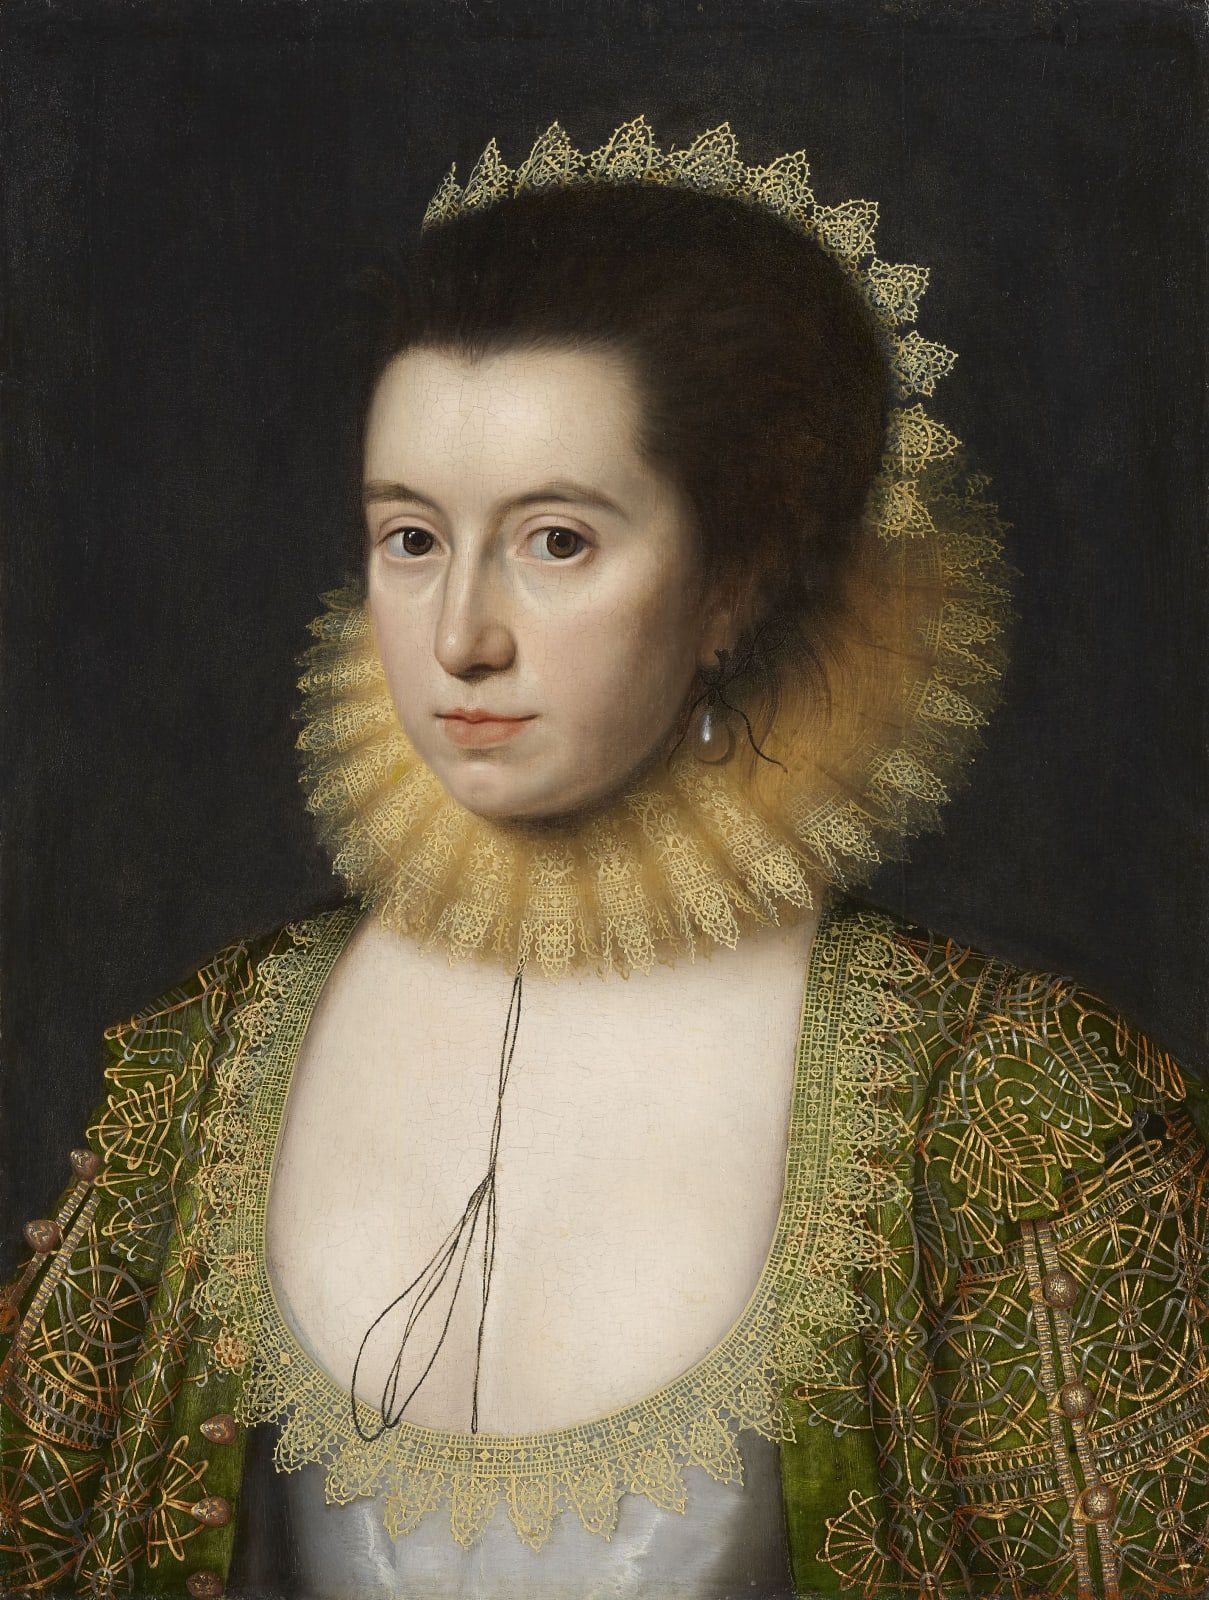 Anne Clifford, Countess of Dorset (1590 - 1676)